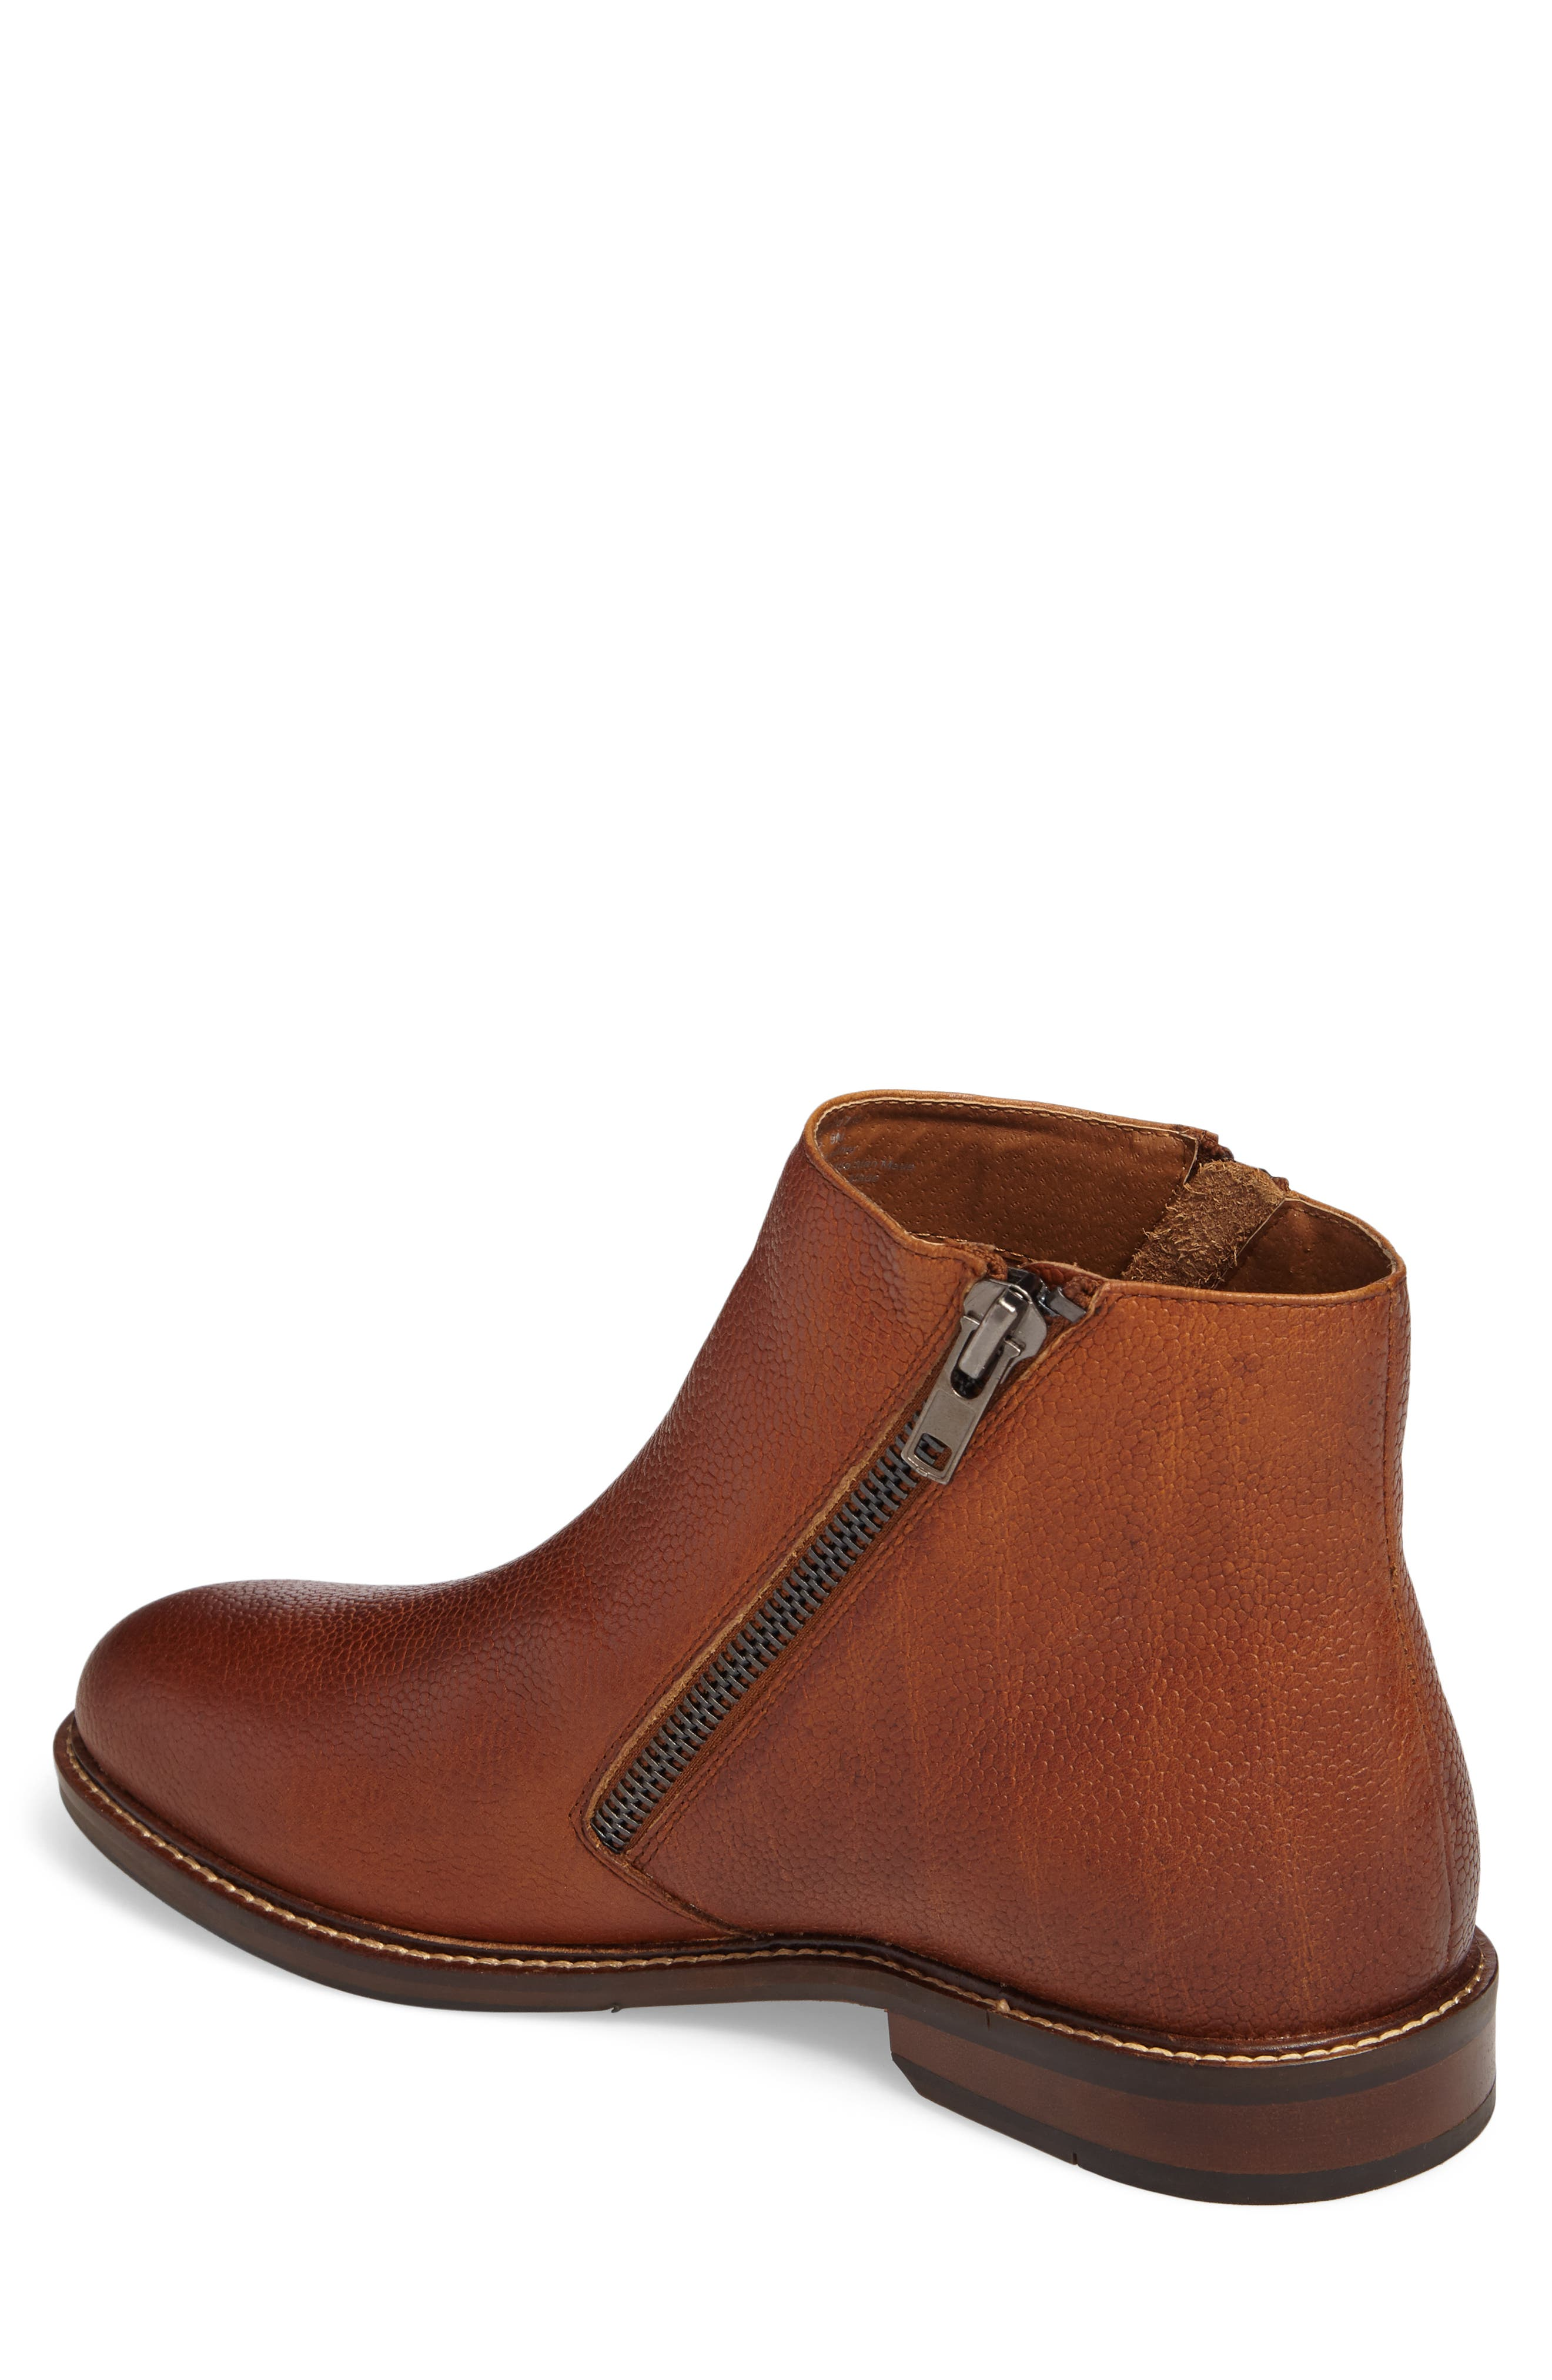 Kenneth Cole Reaction Zip Boot,                             Alternate thumbnail 2, color,                             201